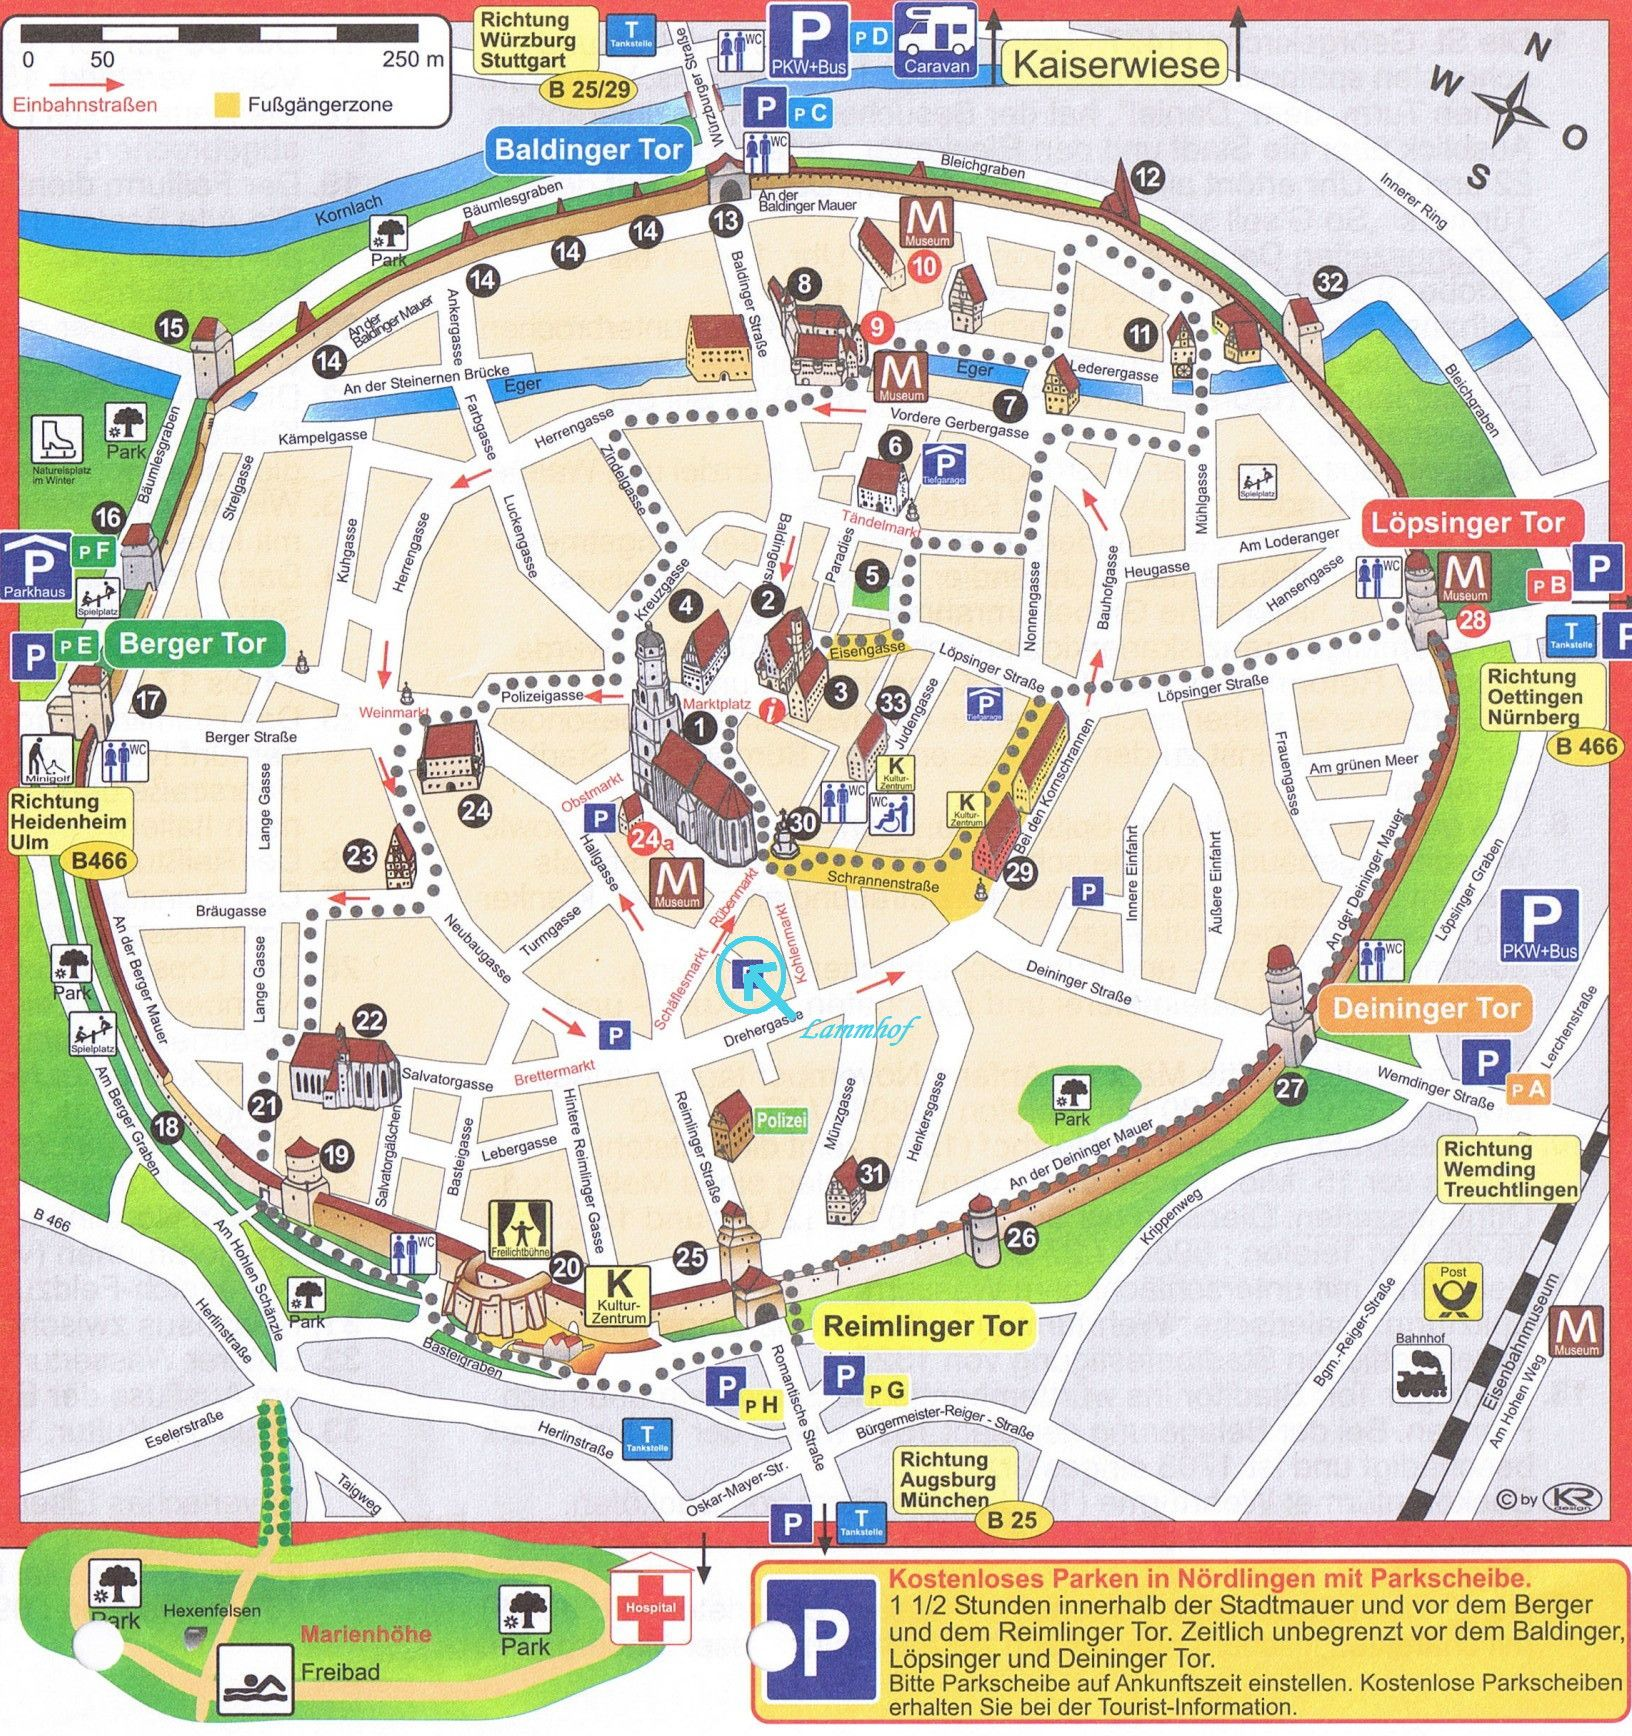 munich map | EURO TOUR | Tourist map, Germany travel, Romantic road